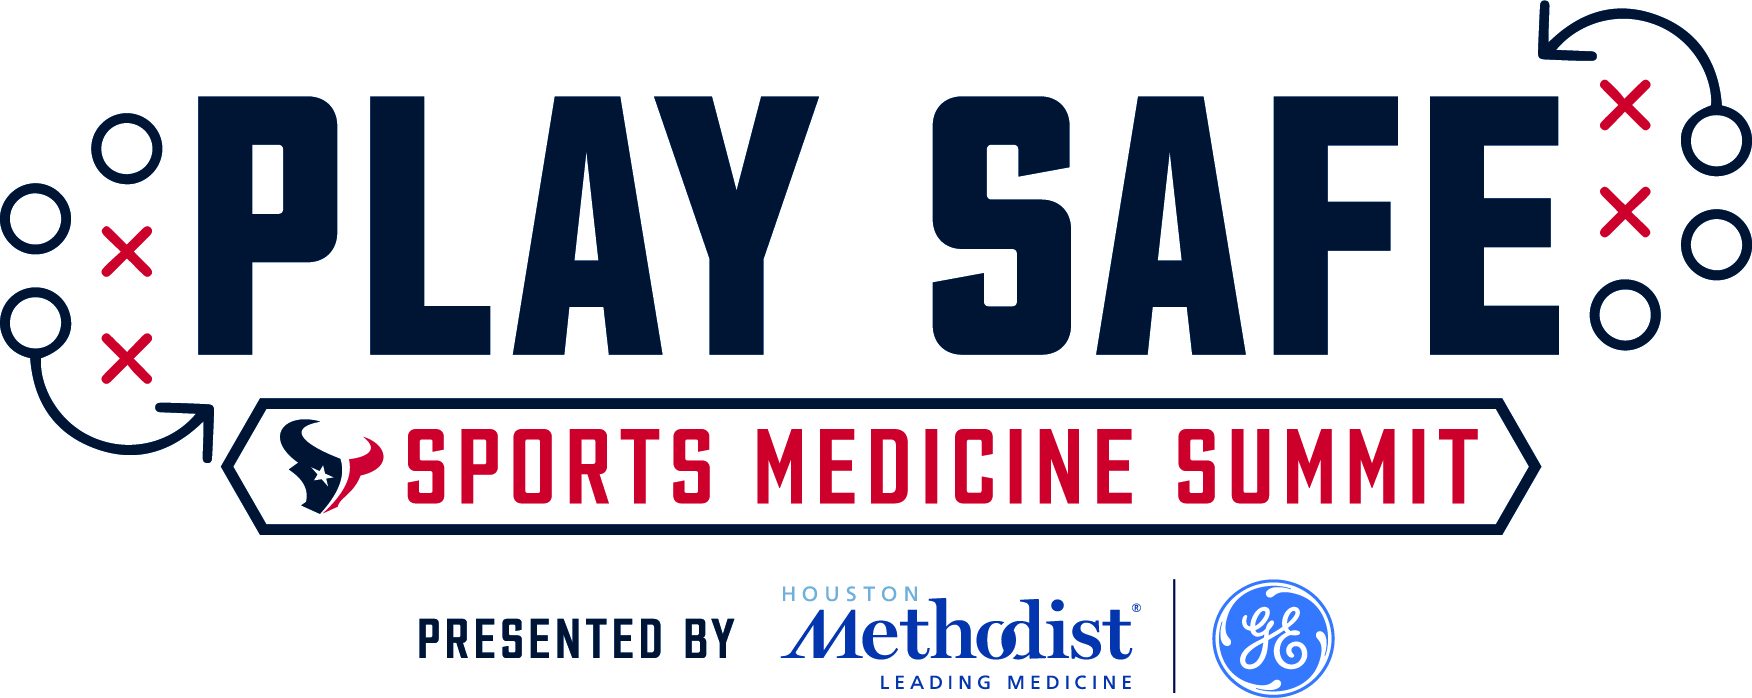 PlaySafe_SportsMed_Primary